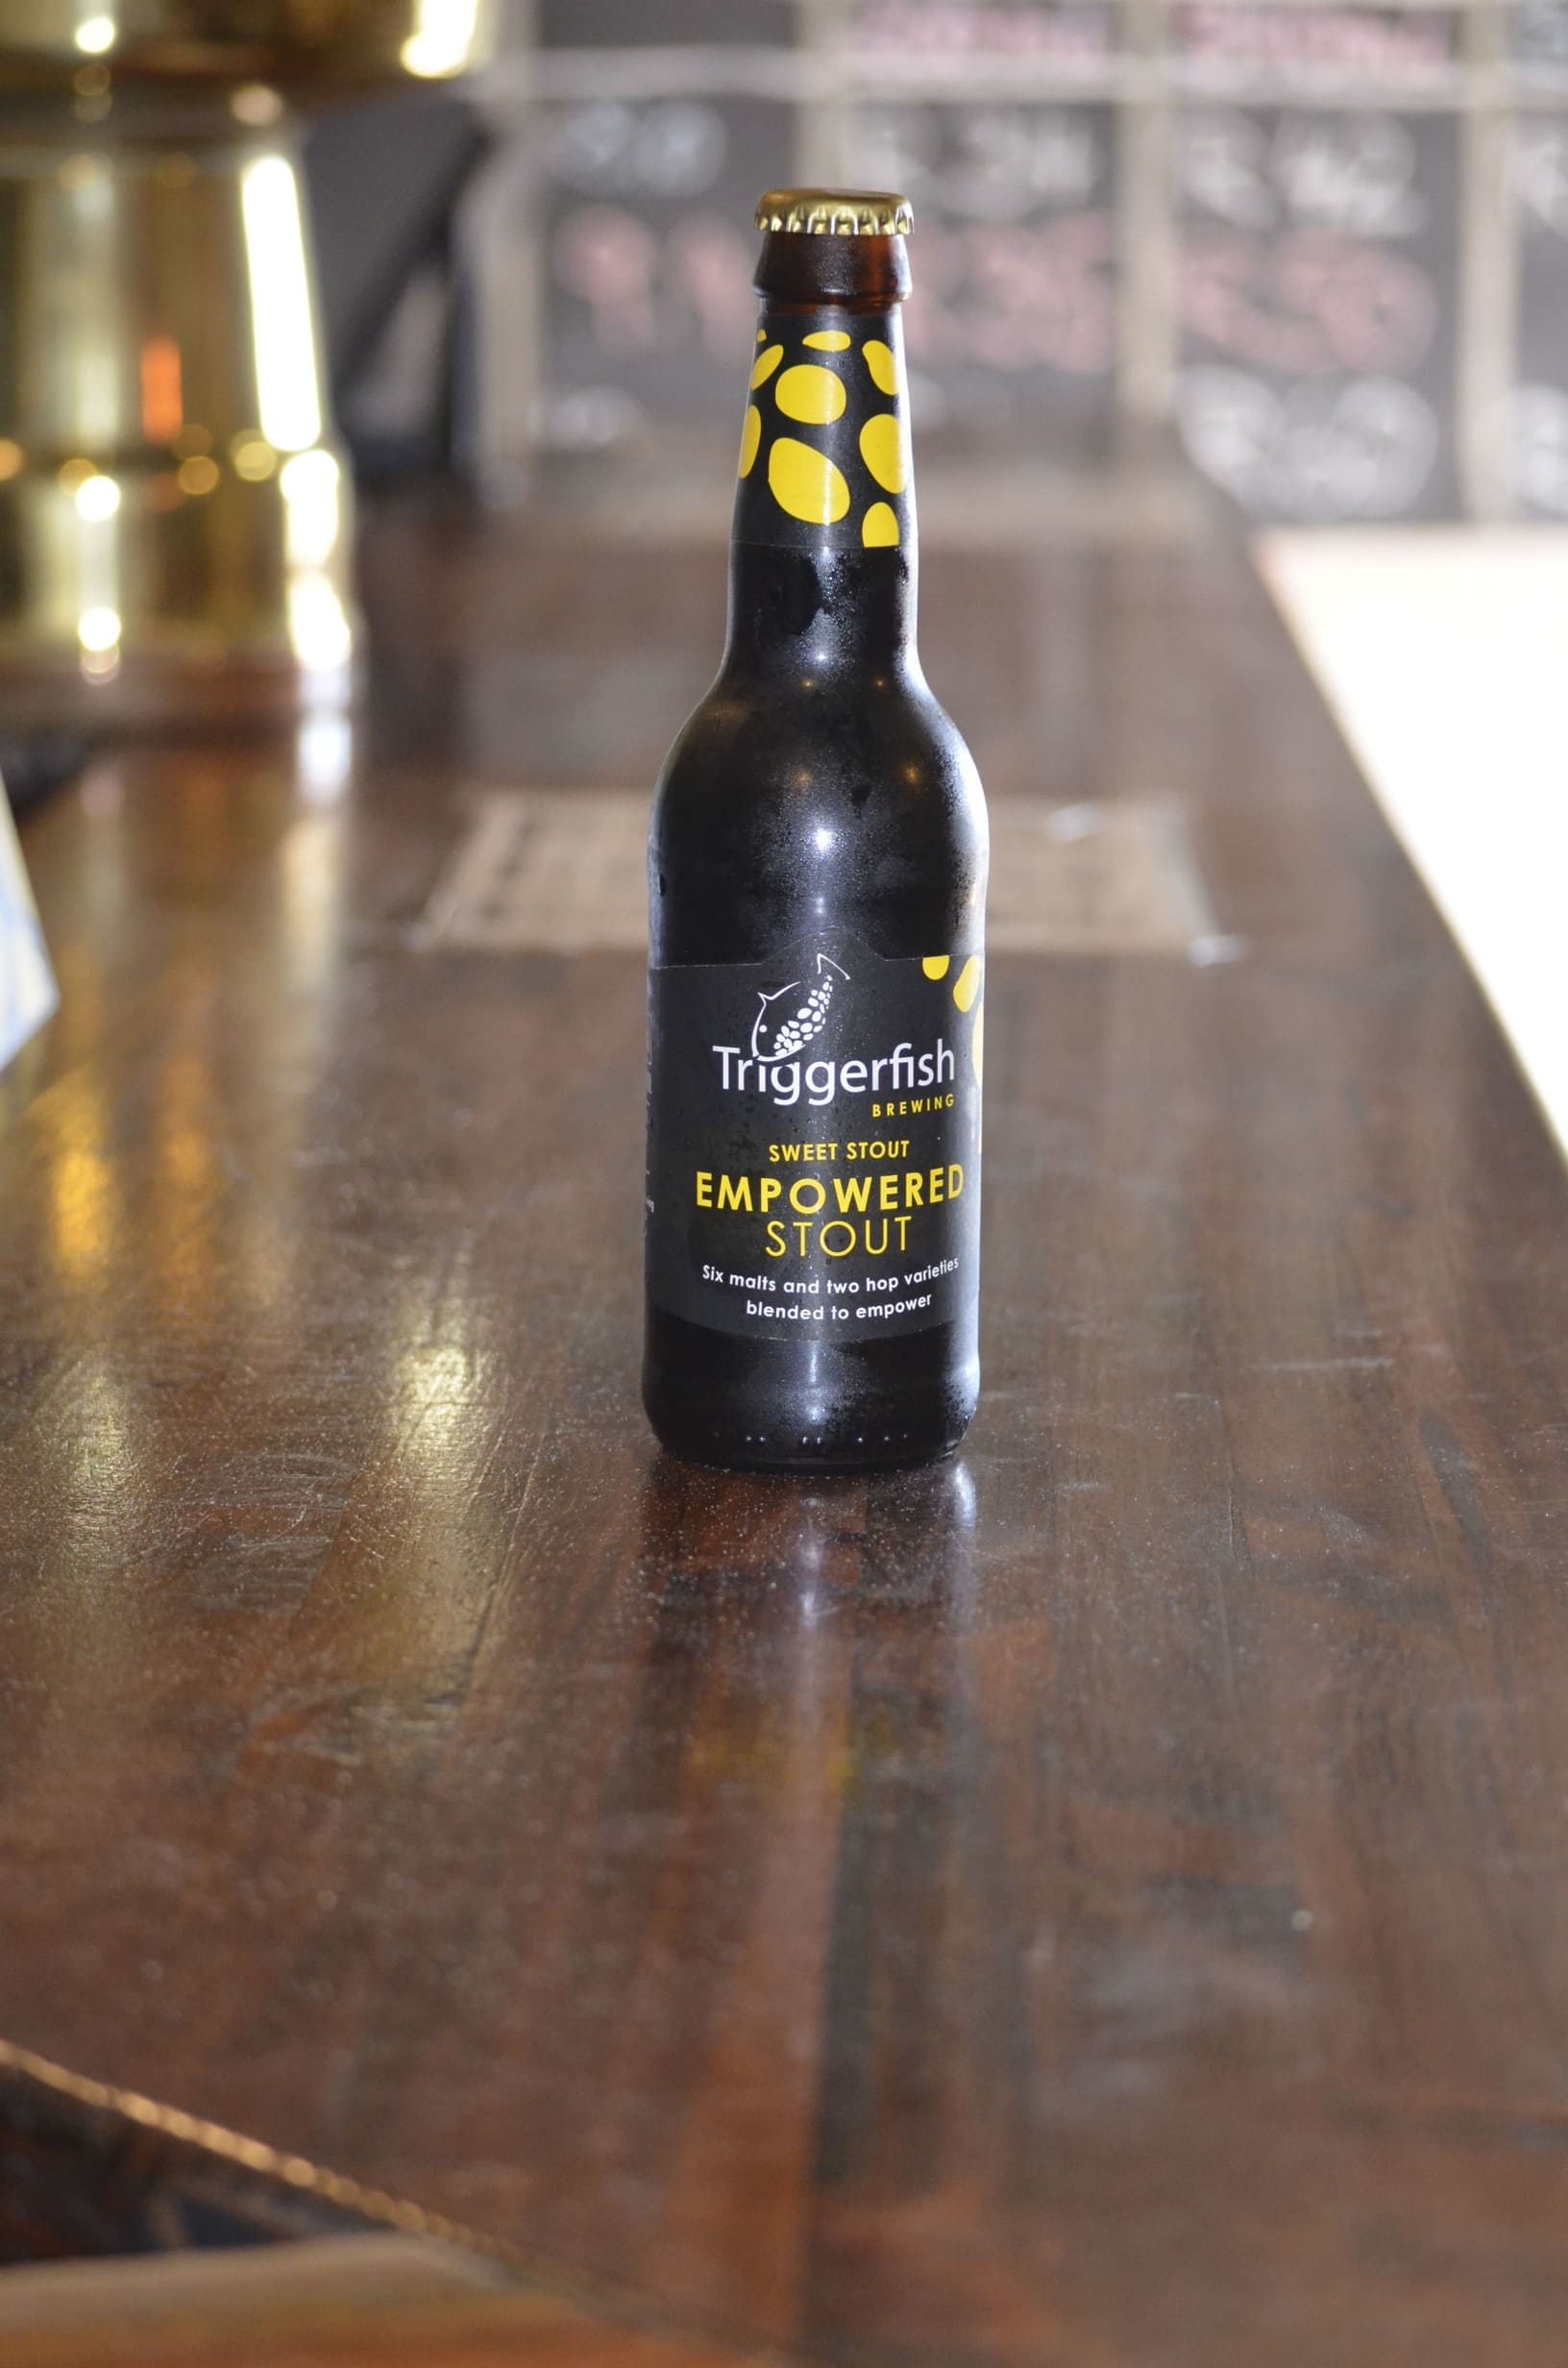 A closed bottle of Triggerfish beer on a wooden bar counter